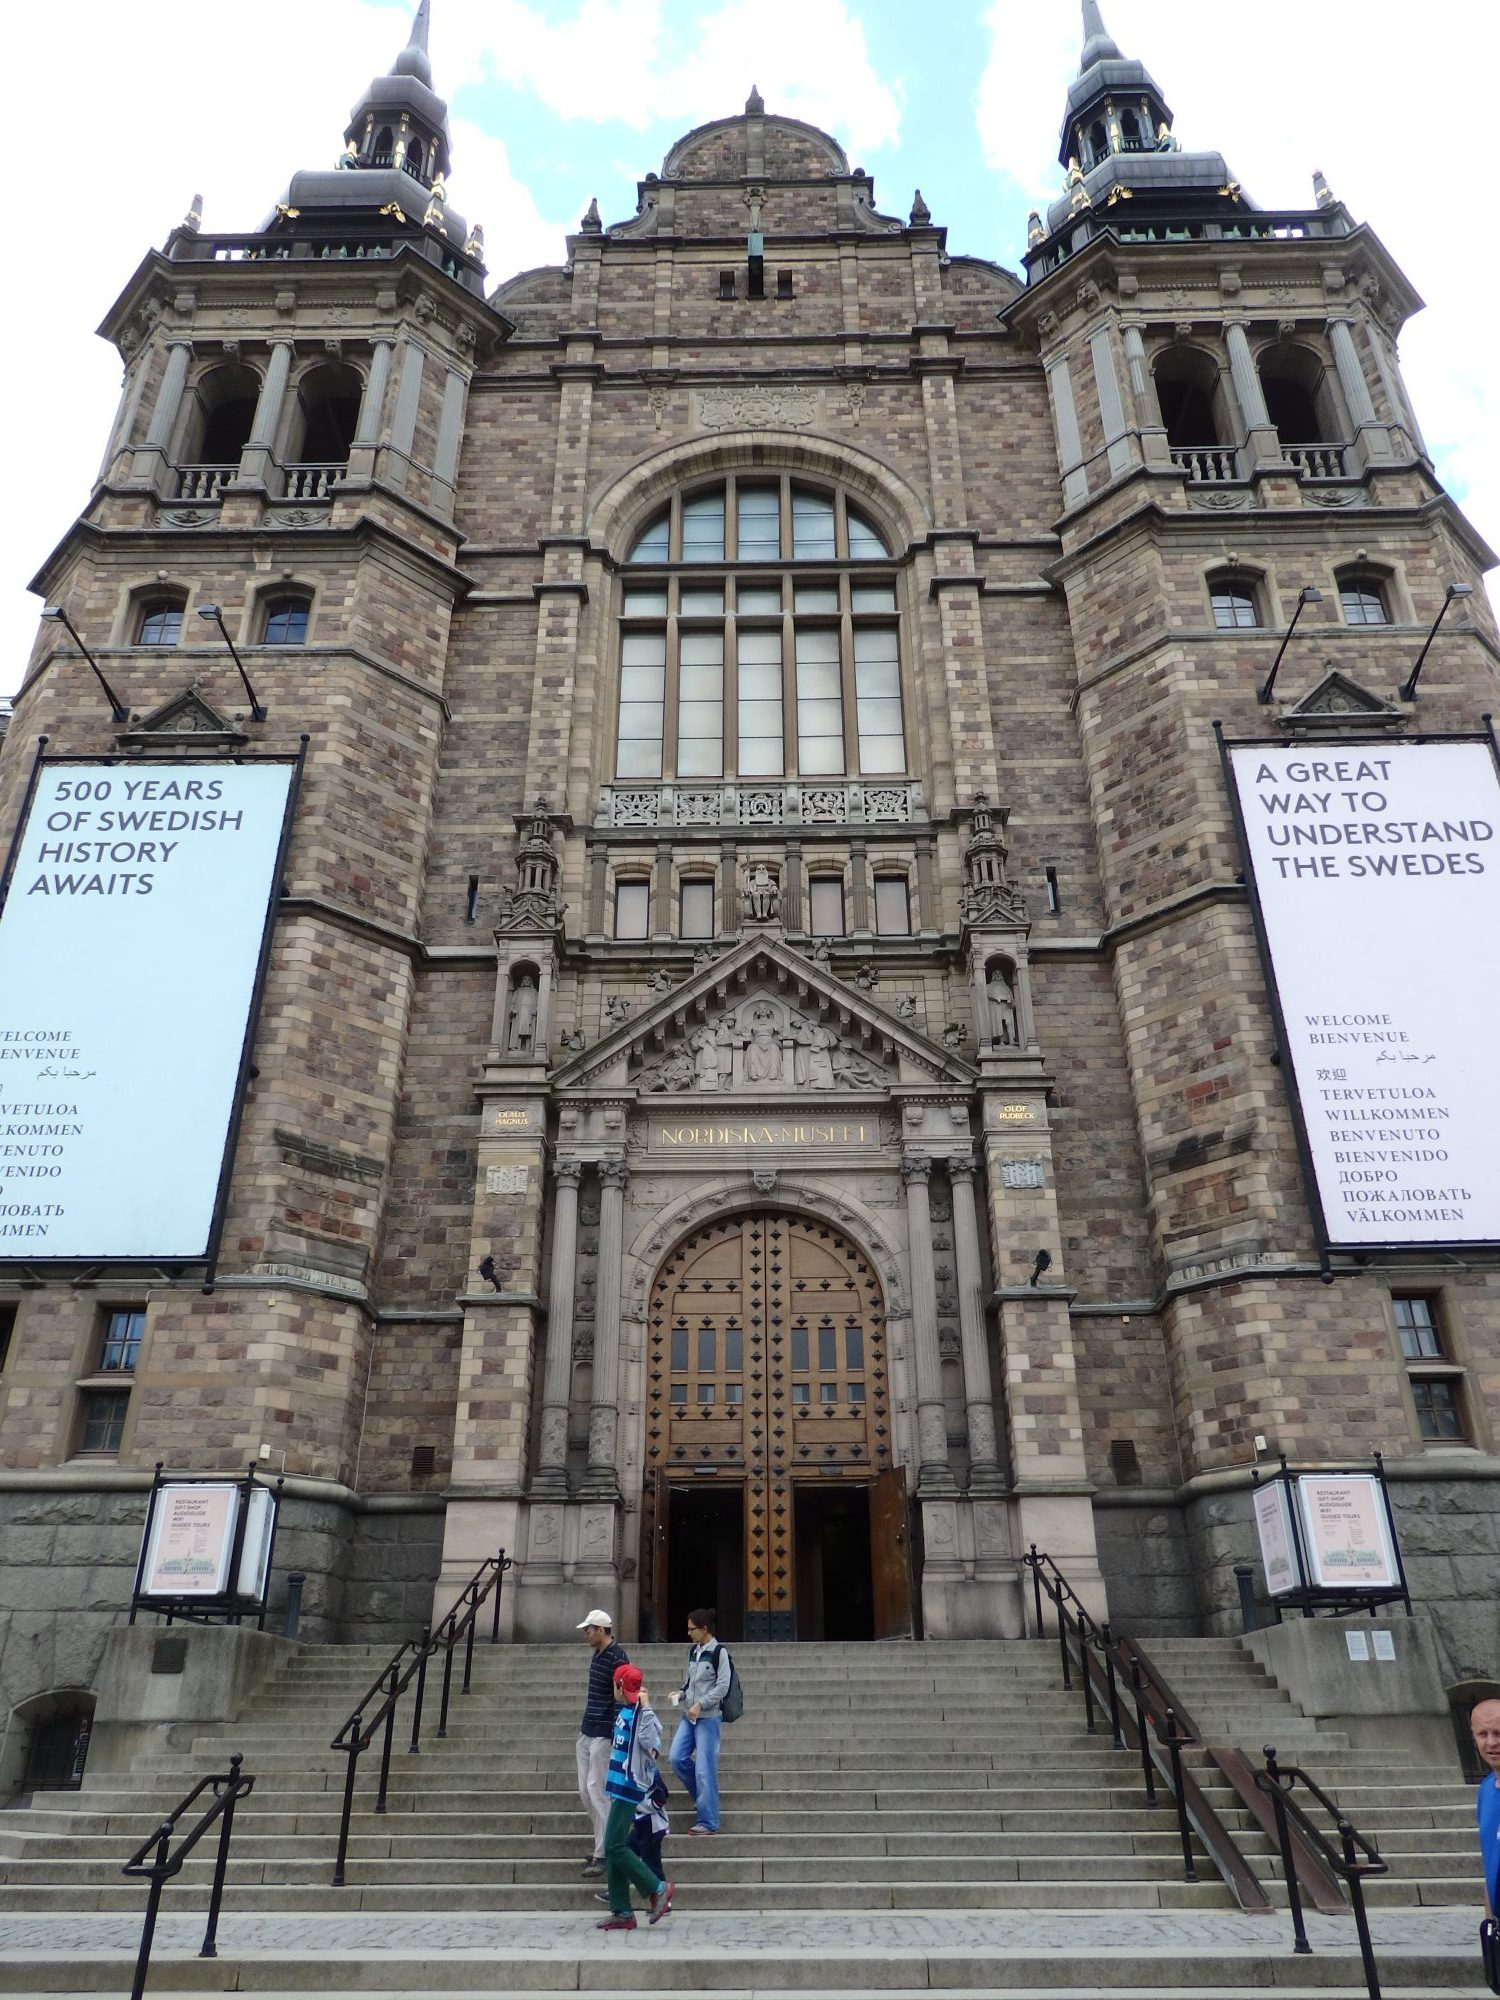 The Nordic Museum in Sweden, Scotland